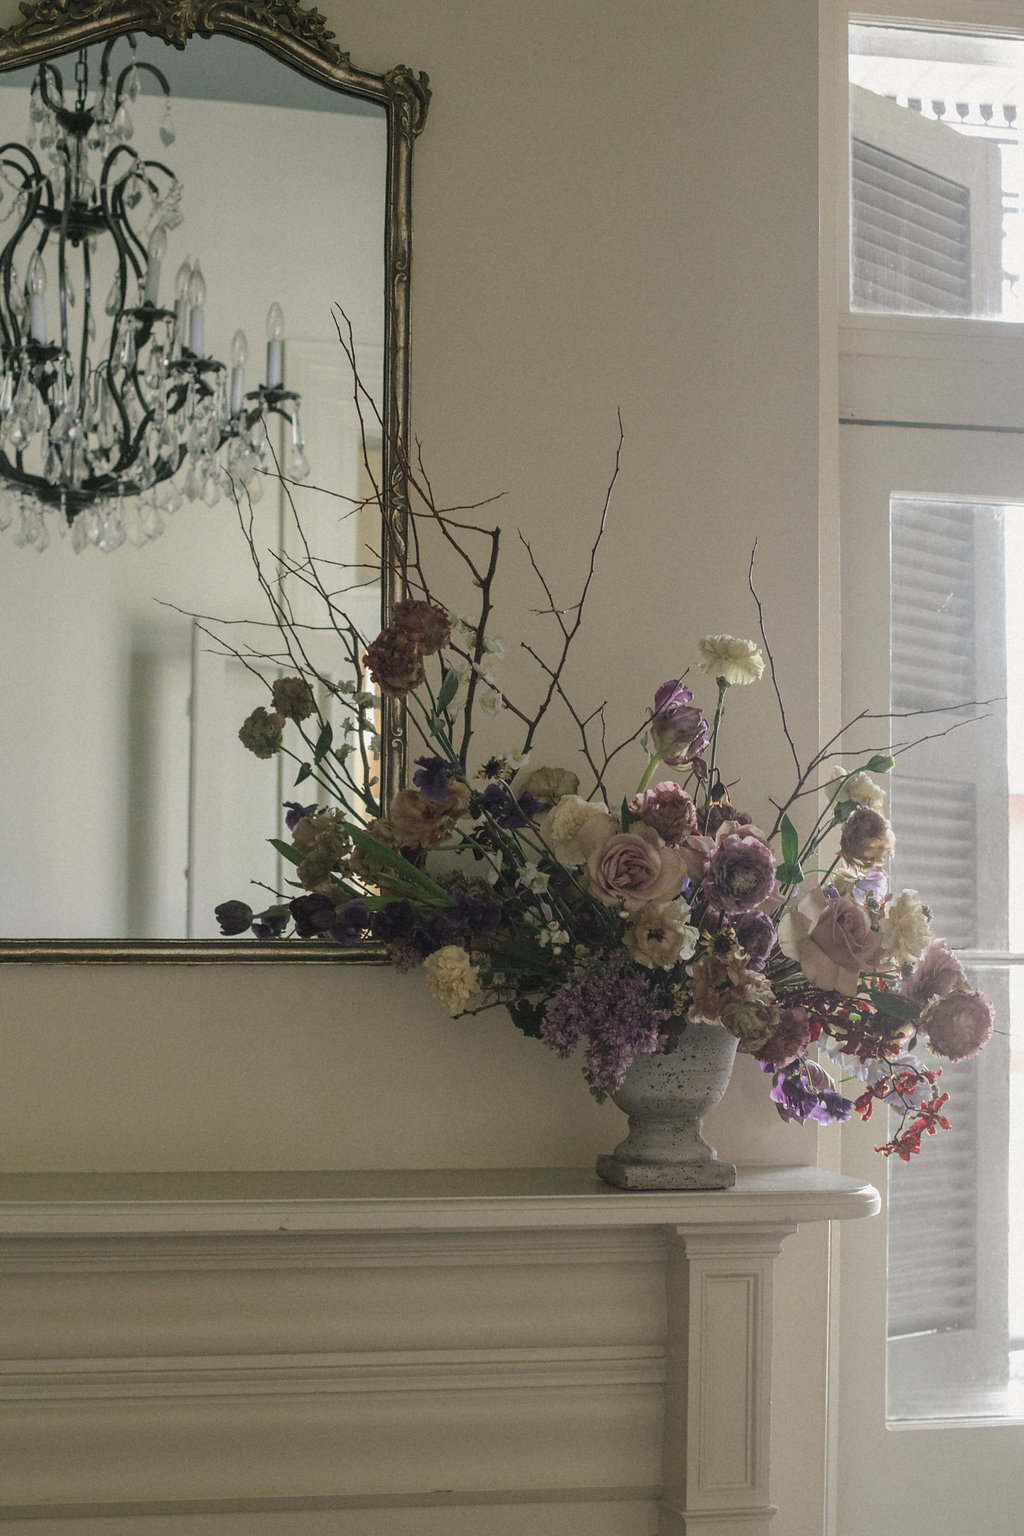 - Students will learn centerpiece design and how to incorporate movement and depth into their designs.